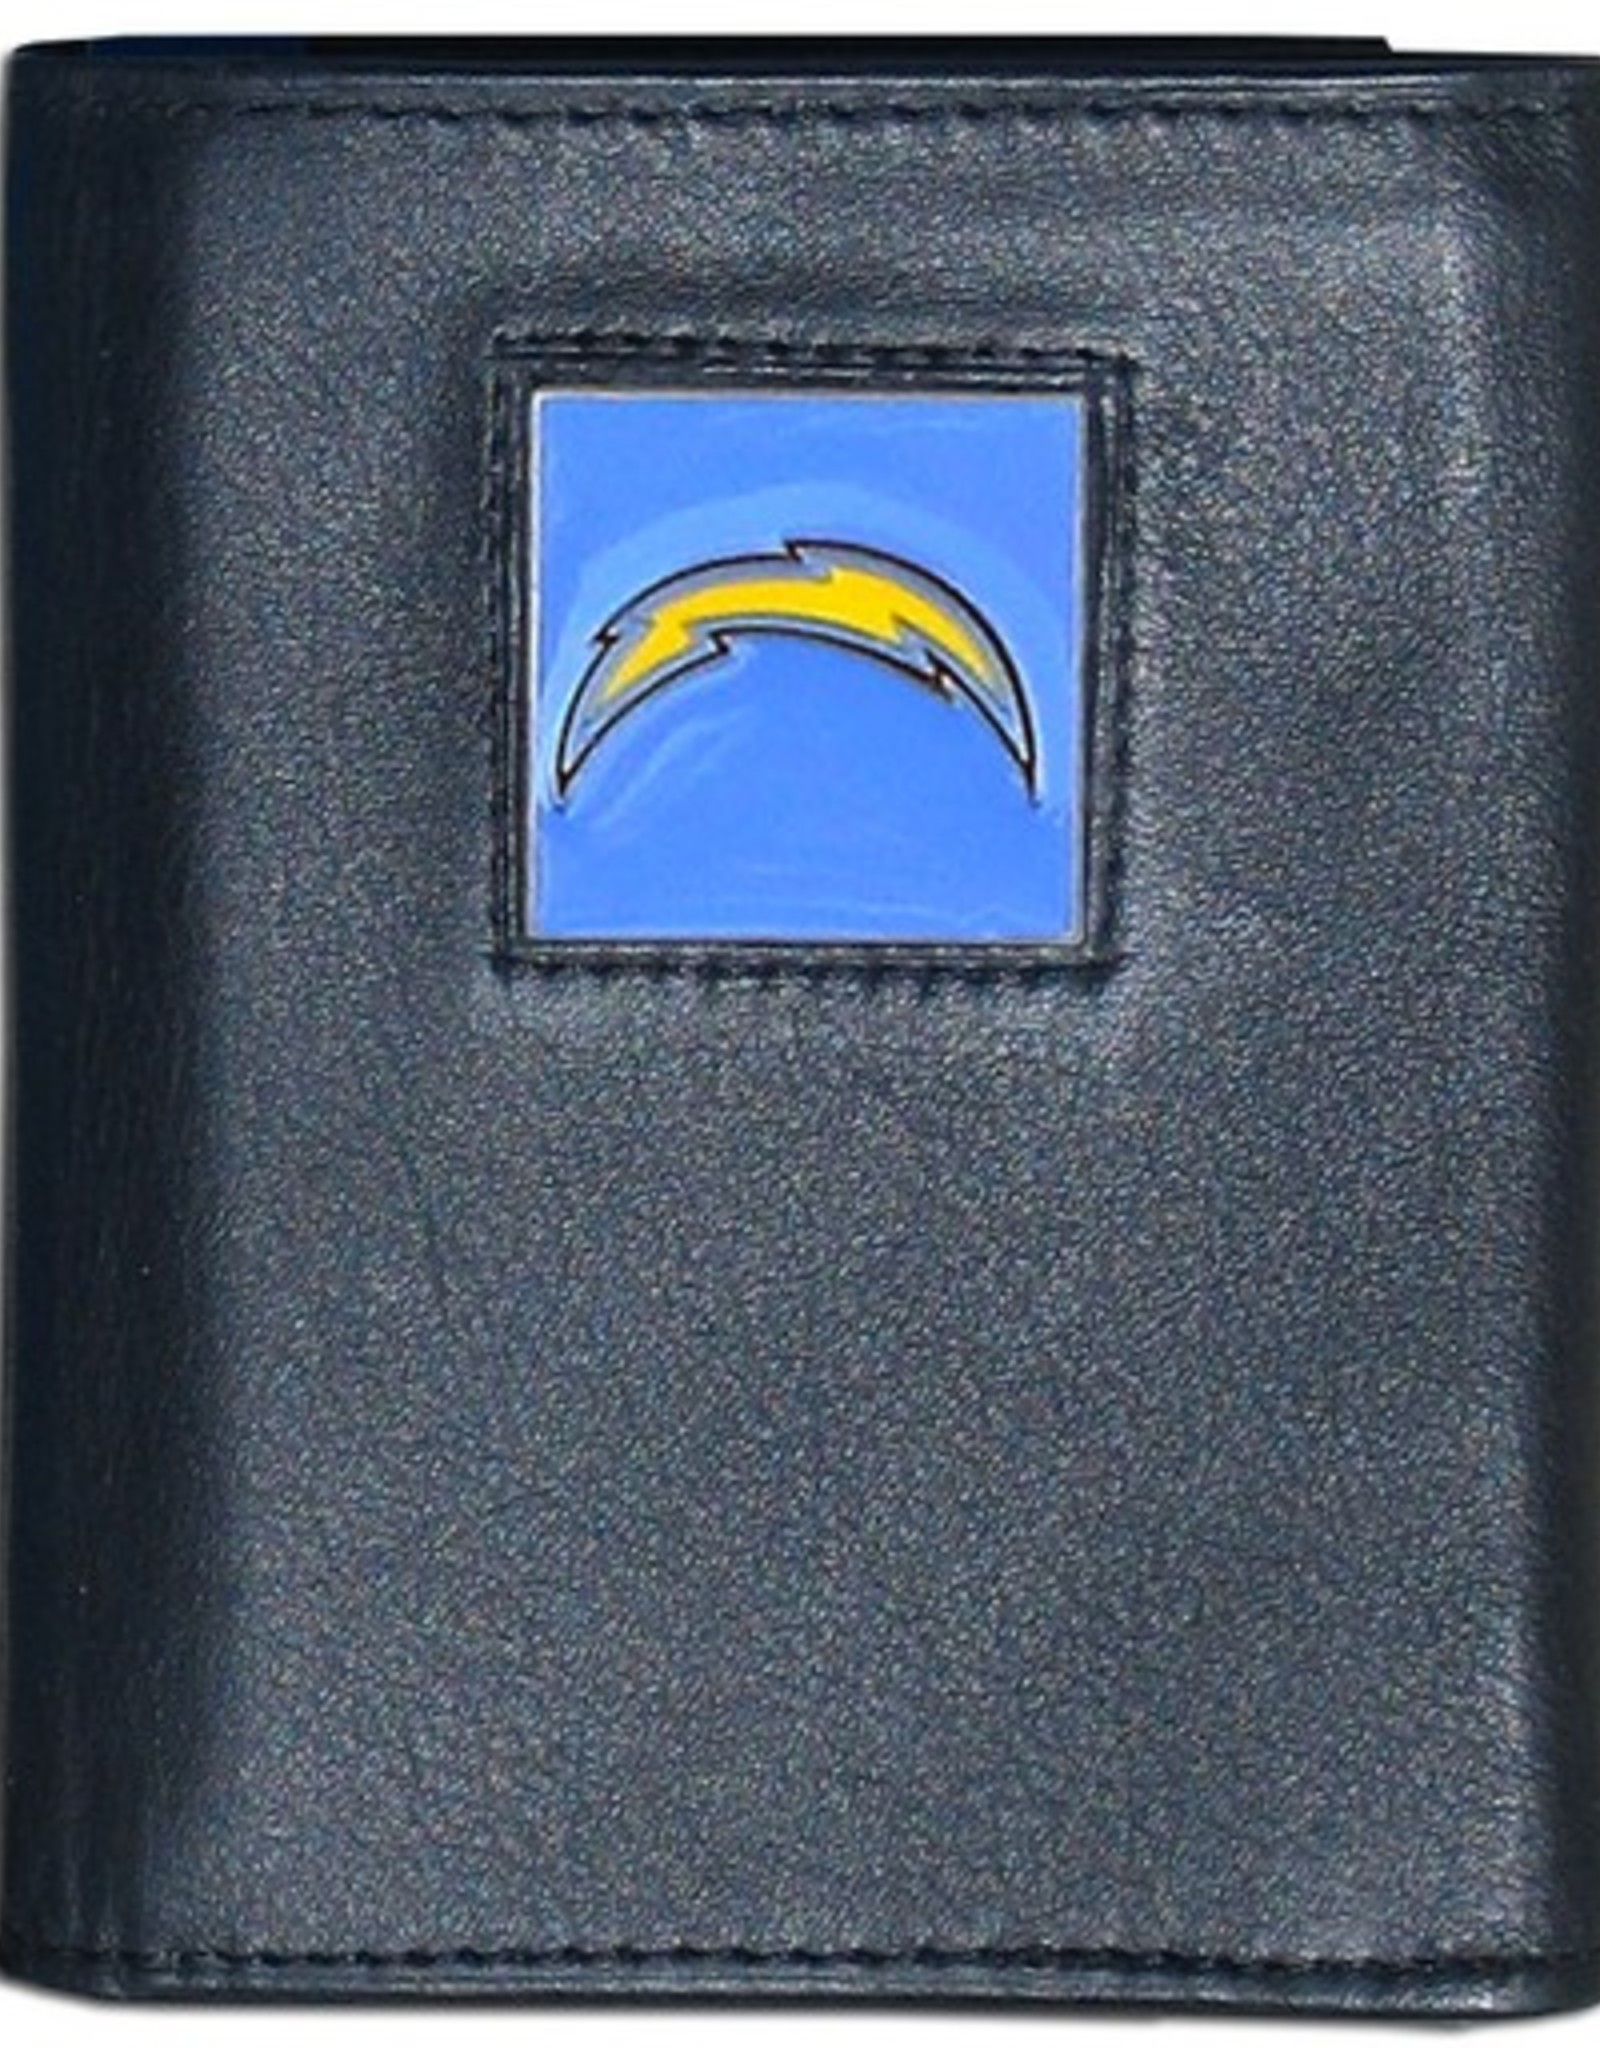 Los Angeles Chargers Executive Black Leather Trifold Wallet